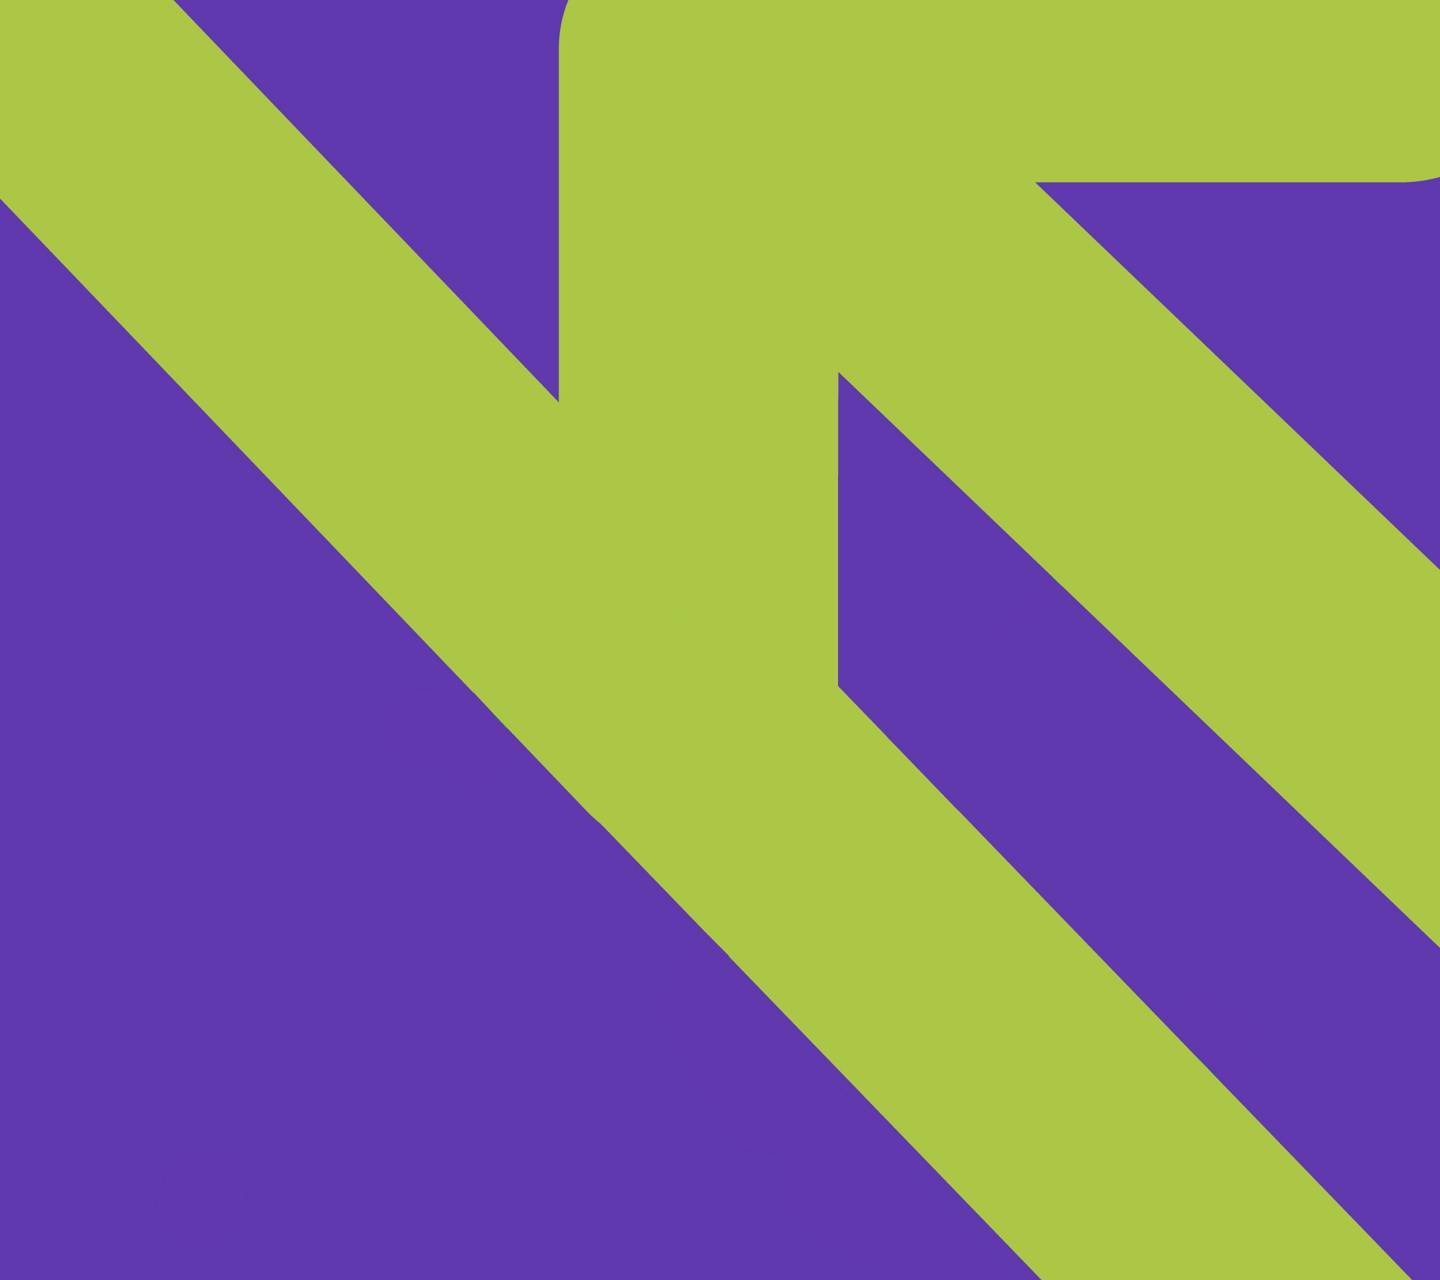 Abstract PurpleGreen